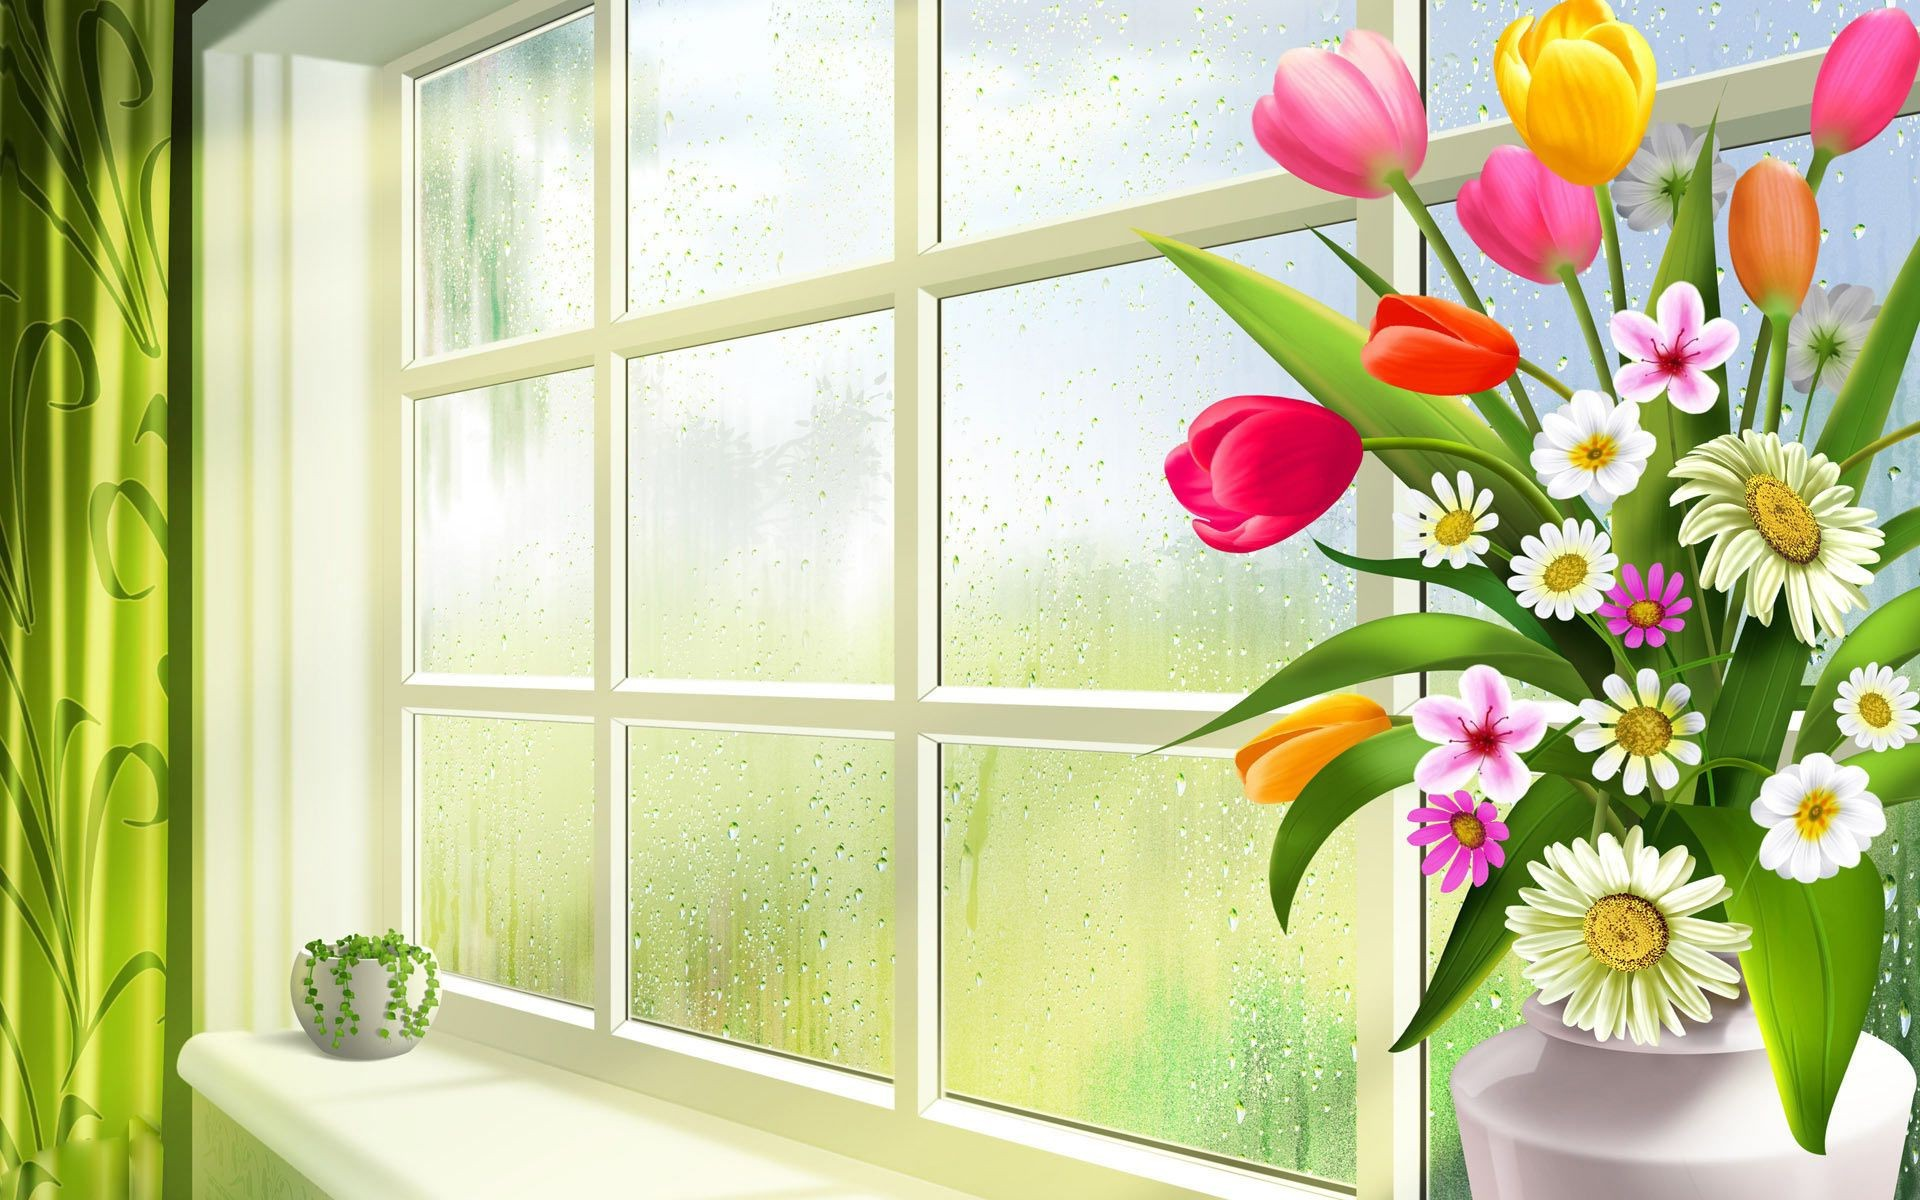 Spring flowers tulips daisies greenery vase pot glass